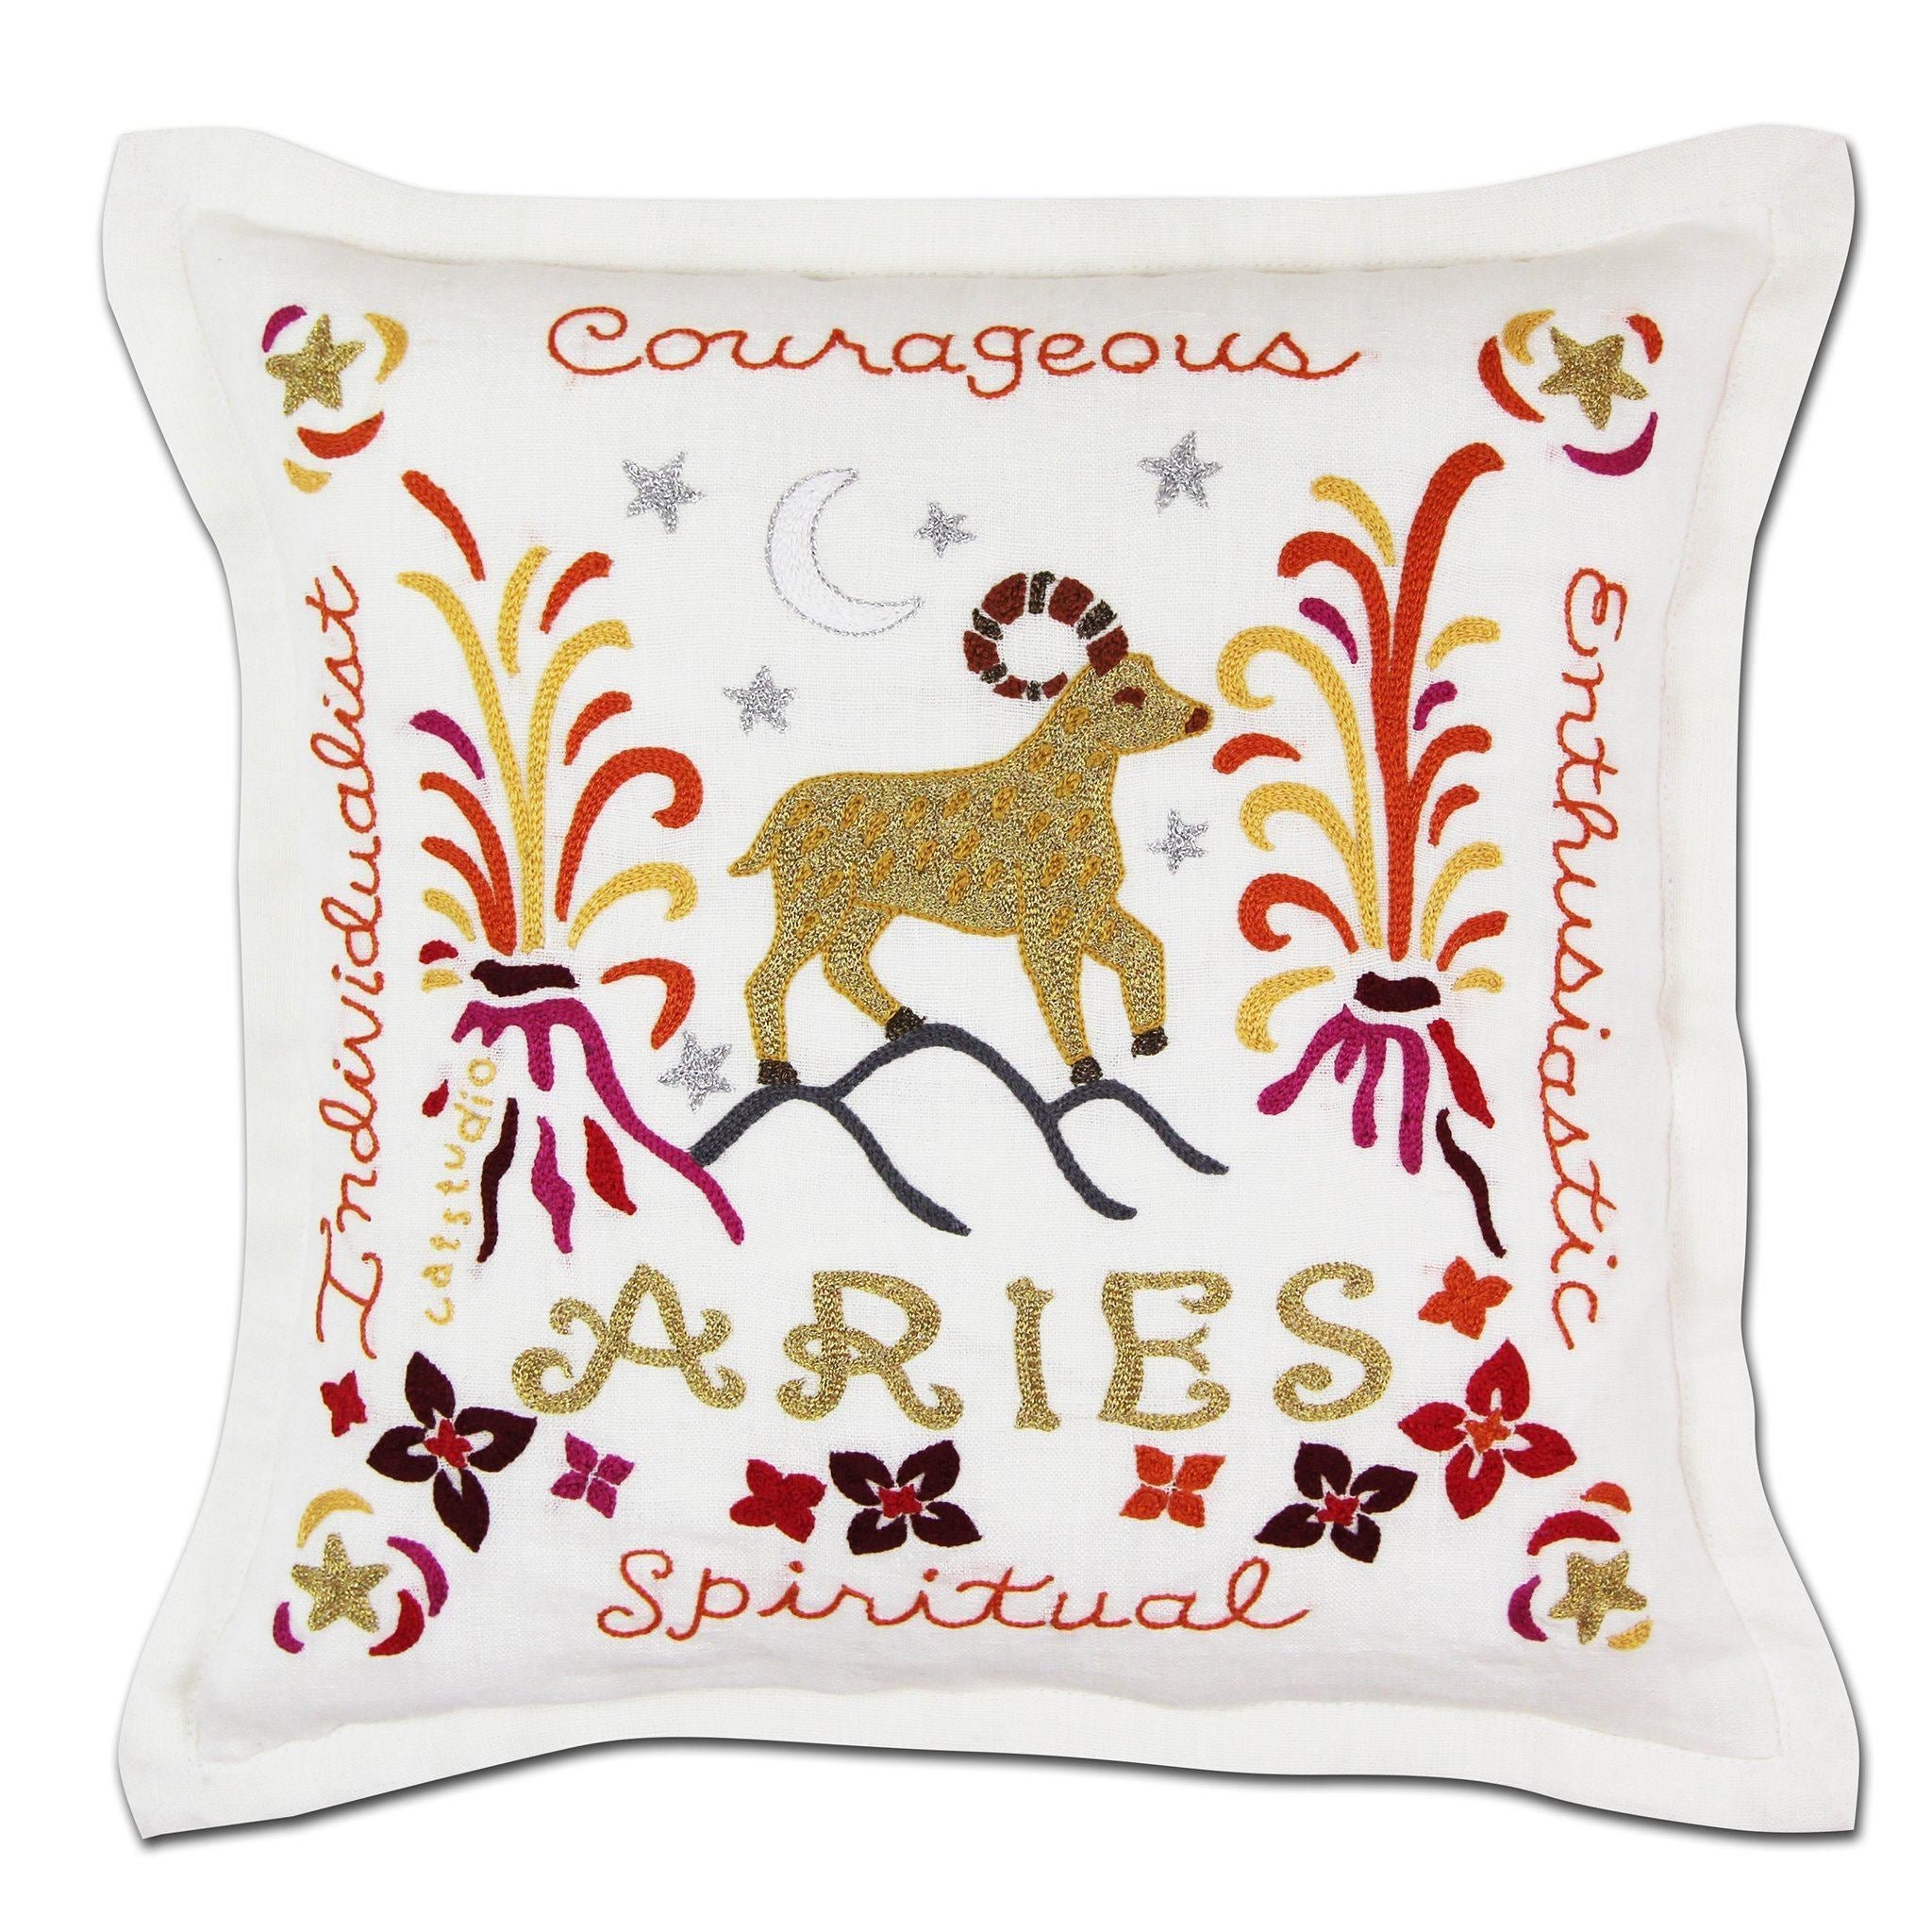 Aries Astrology Hand-Embroidered Pillow